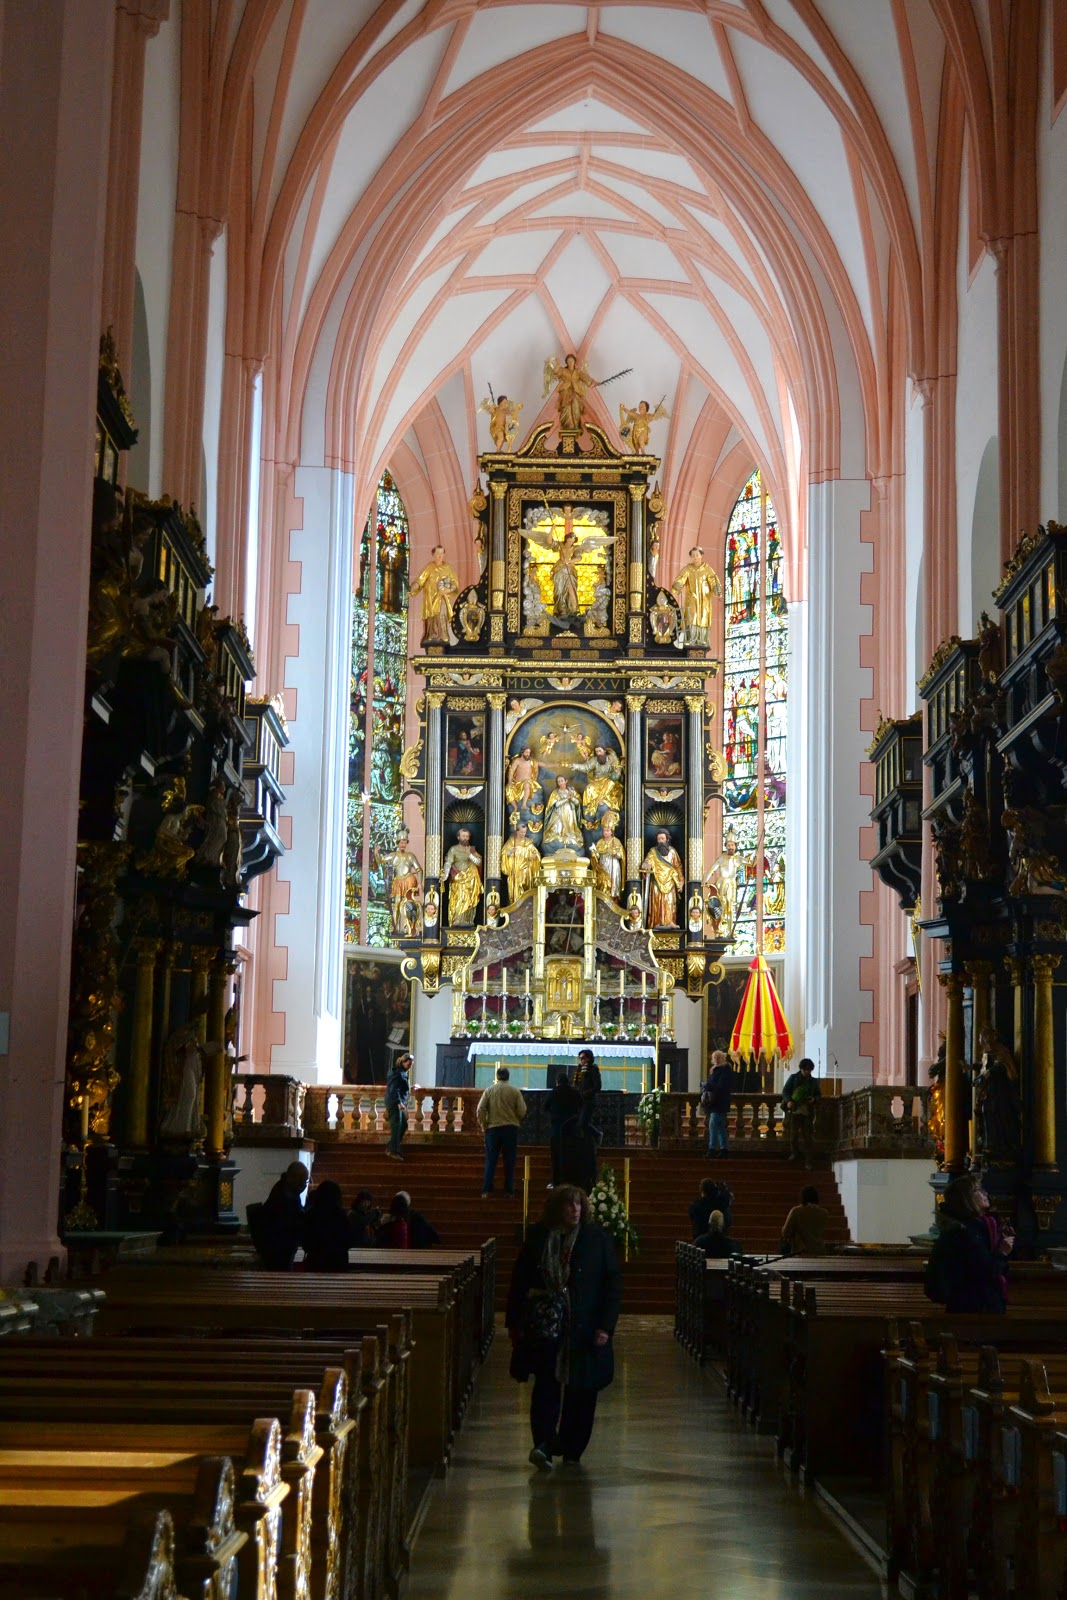 Saint Michael Church in Mondsee, Austria.